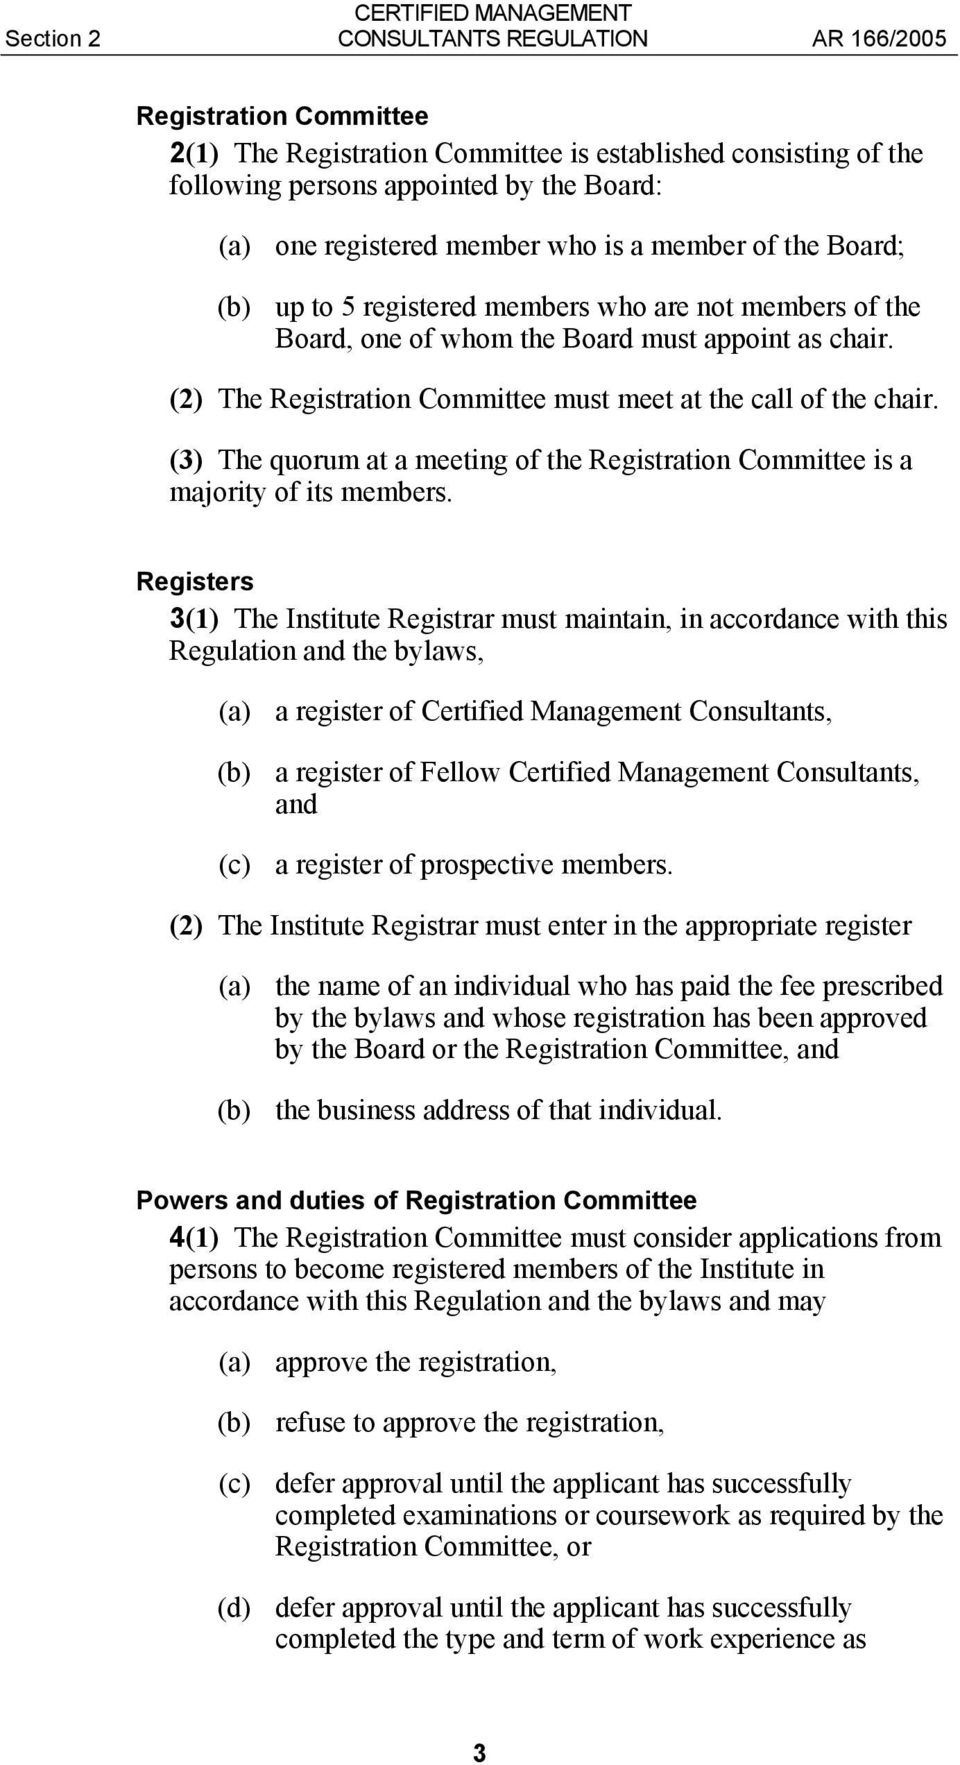 (3) The quorum at a meeting of the Registration Committee is a majority of its members.